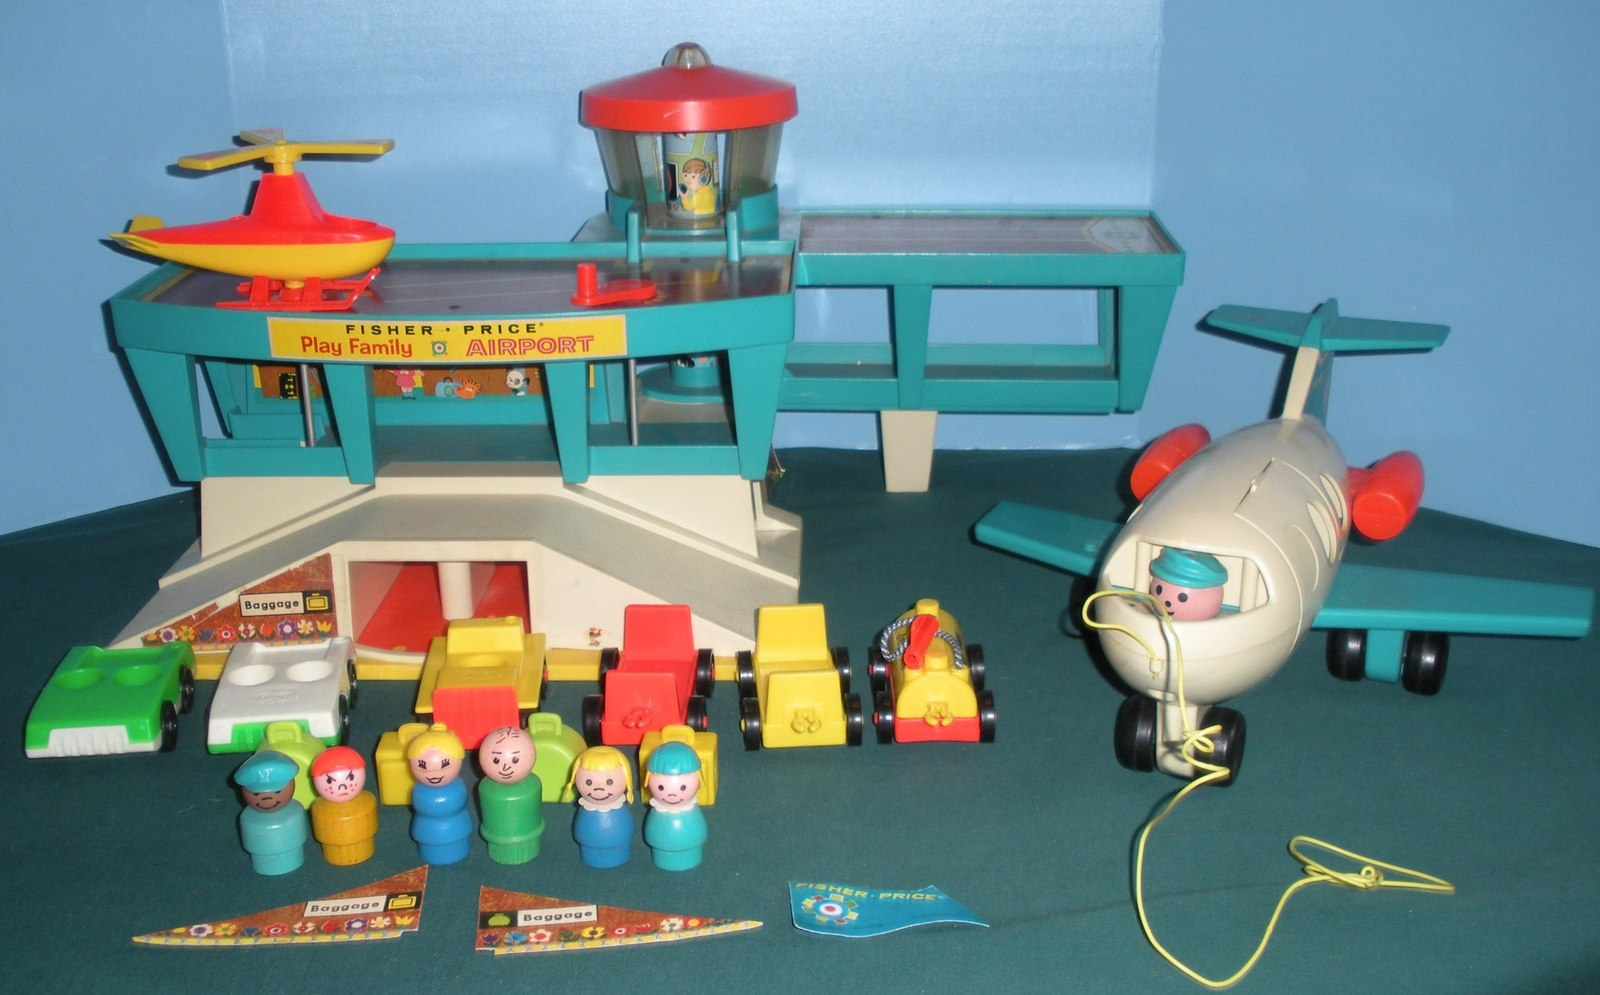 Vintage Fisher Price Play Family #996 Airport Complete/EXC! (O)